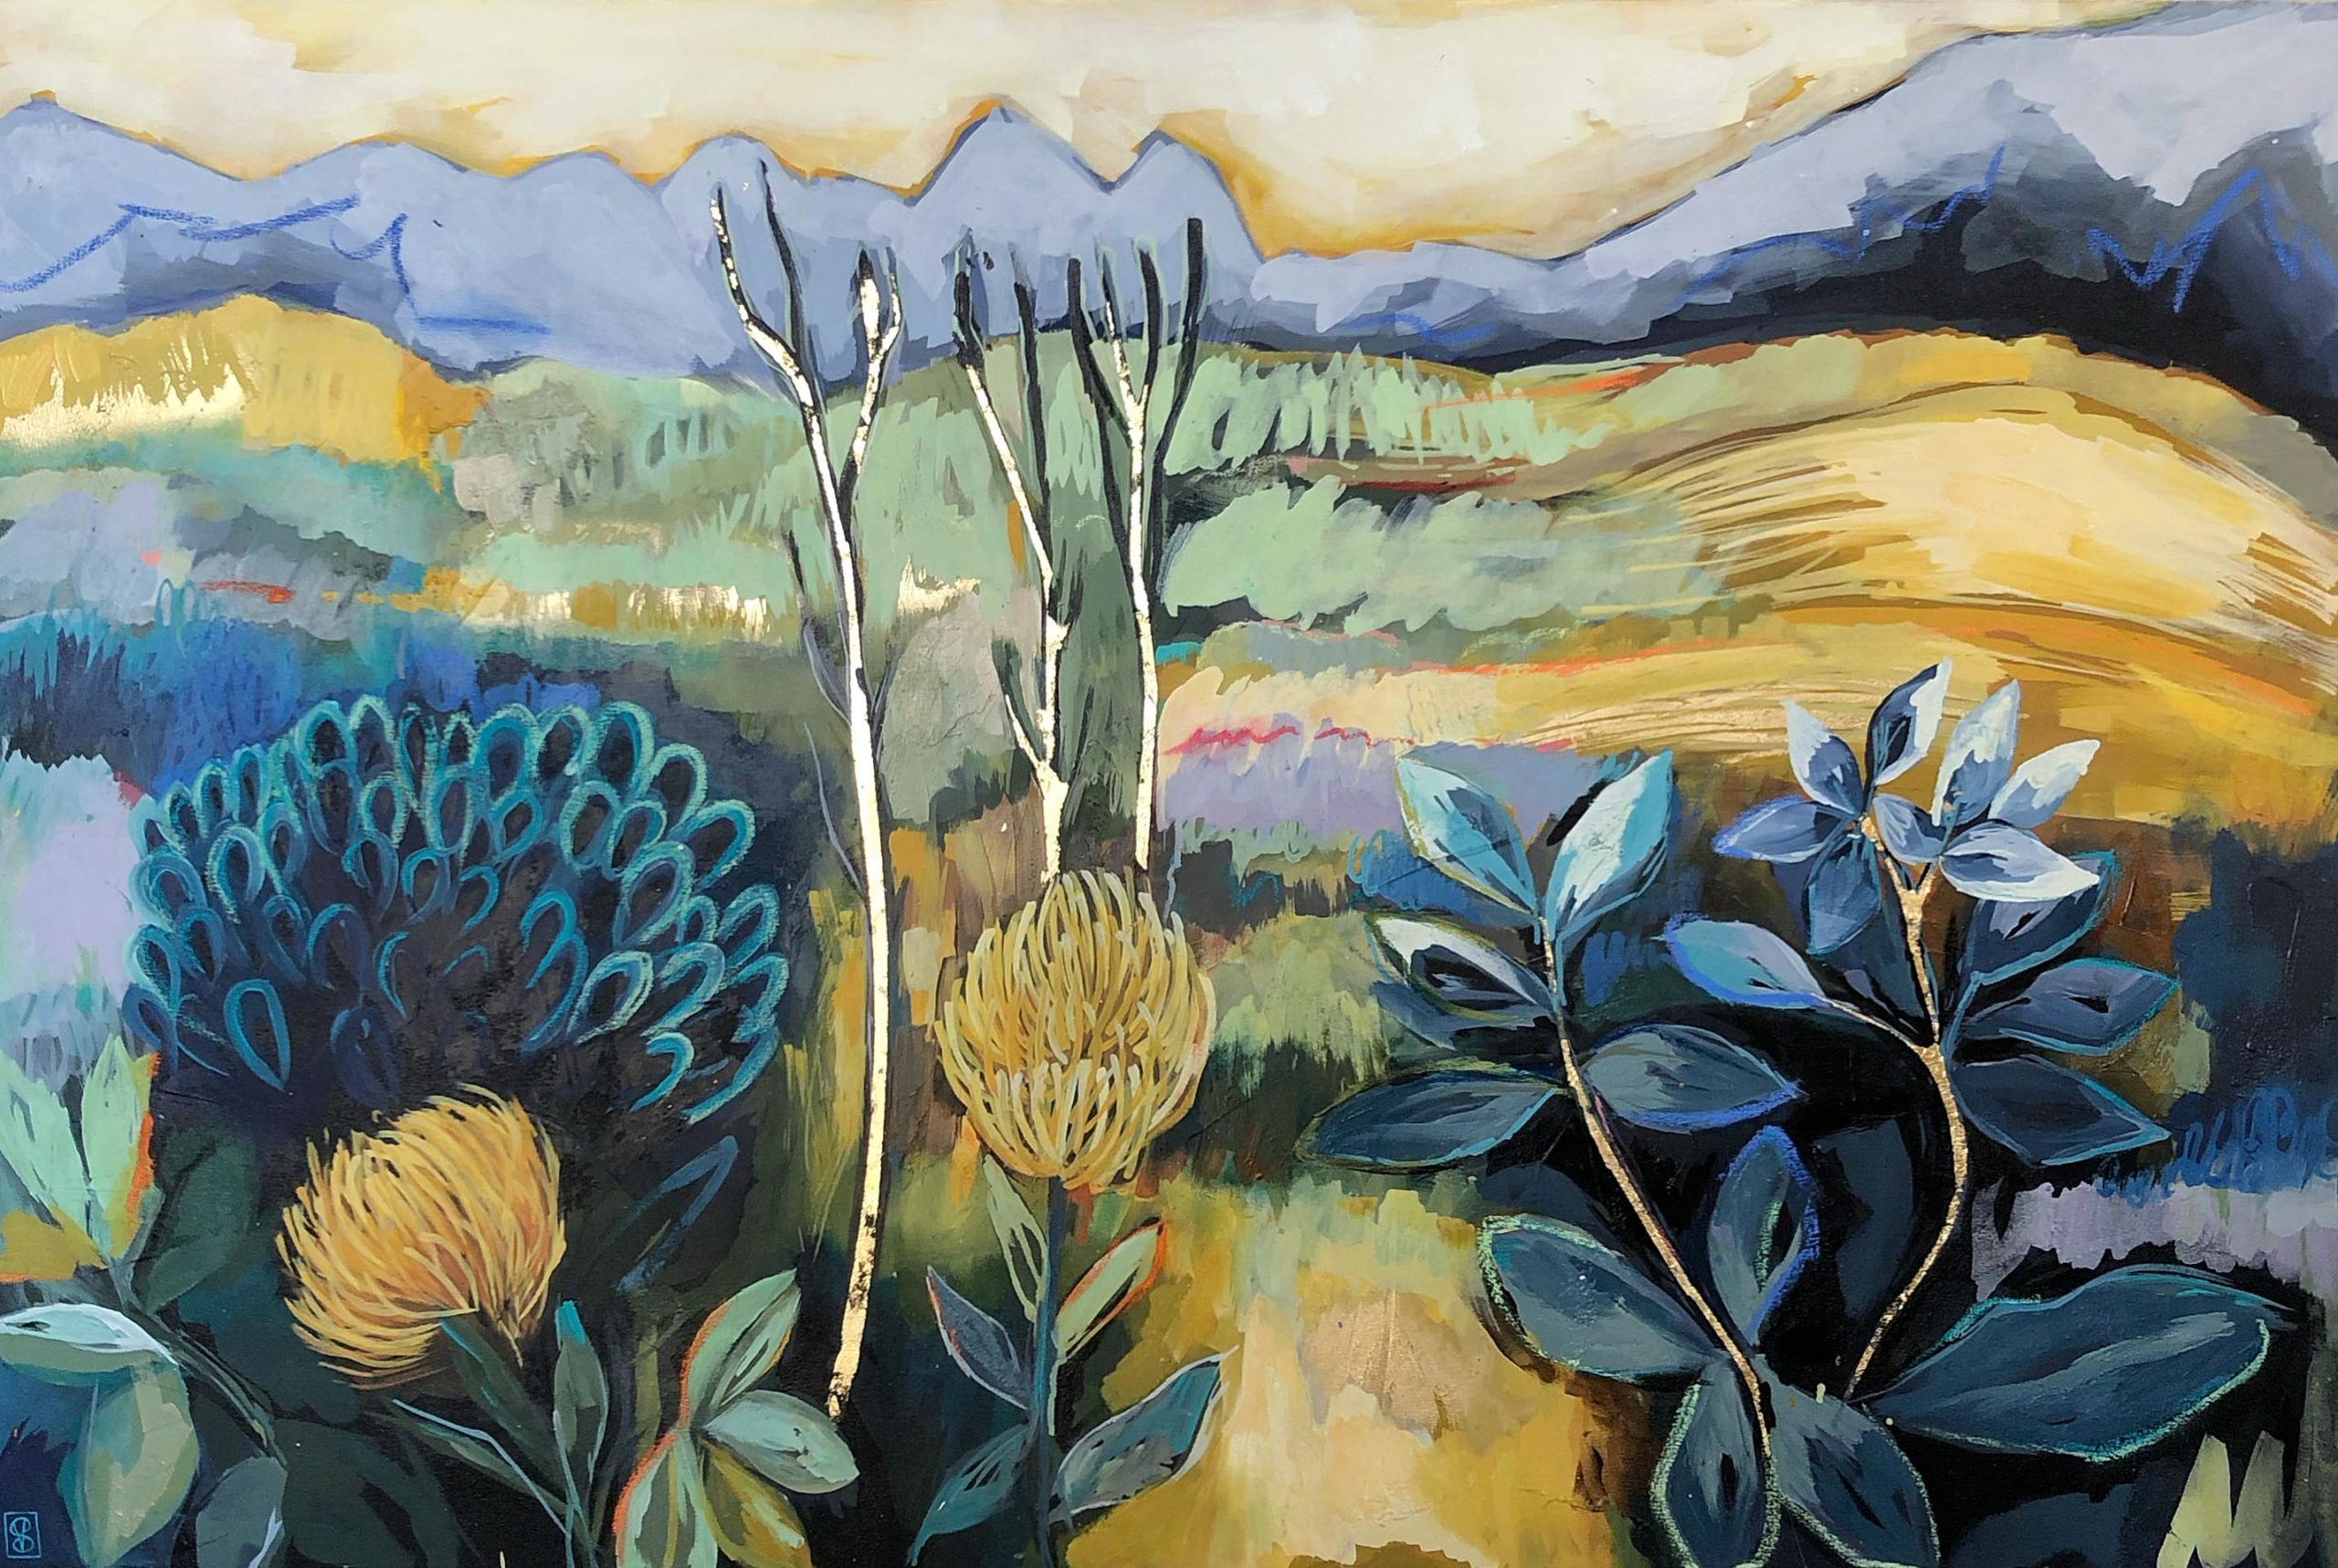 Vicky Sanders Abstract Botanical - Boland Landscape with Pin Cushions